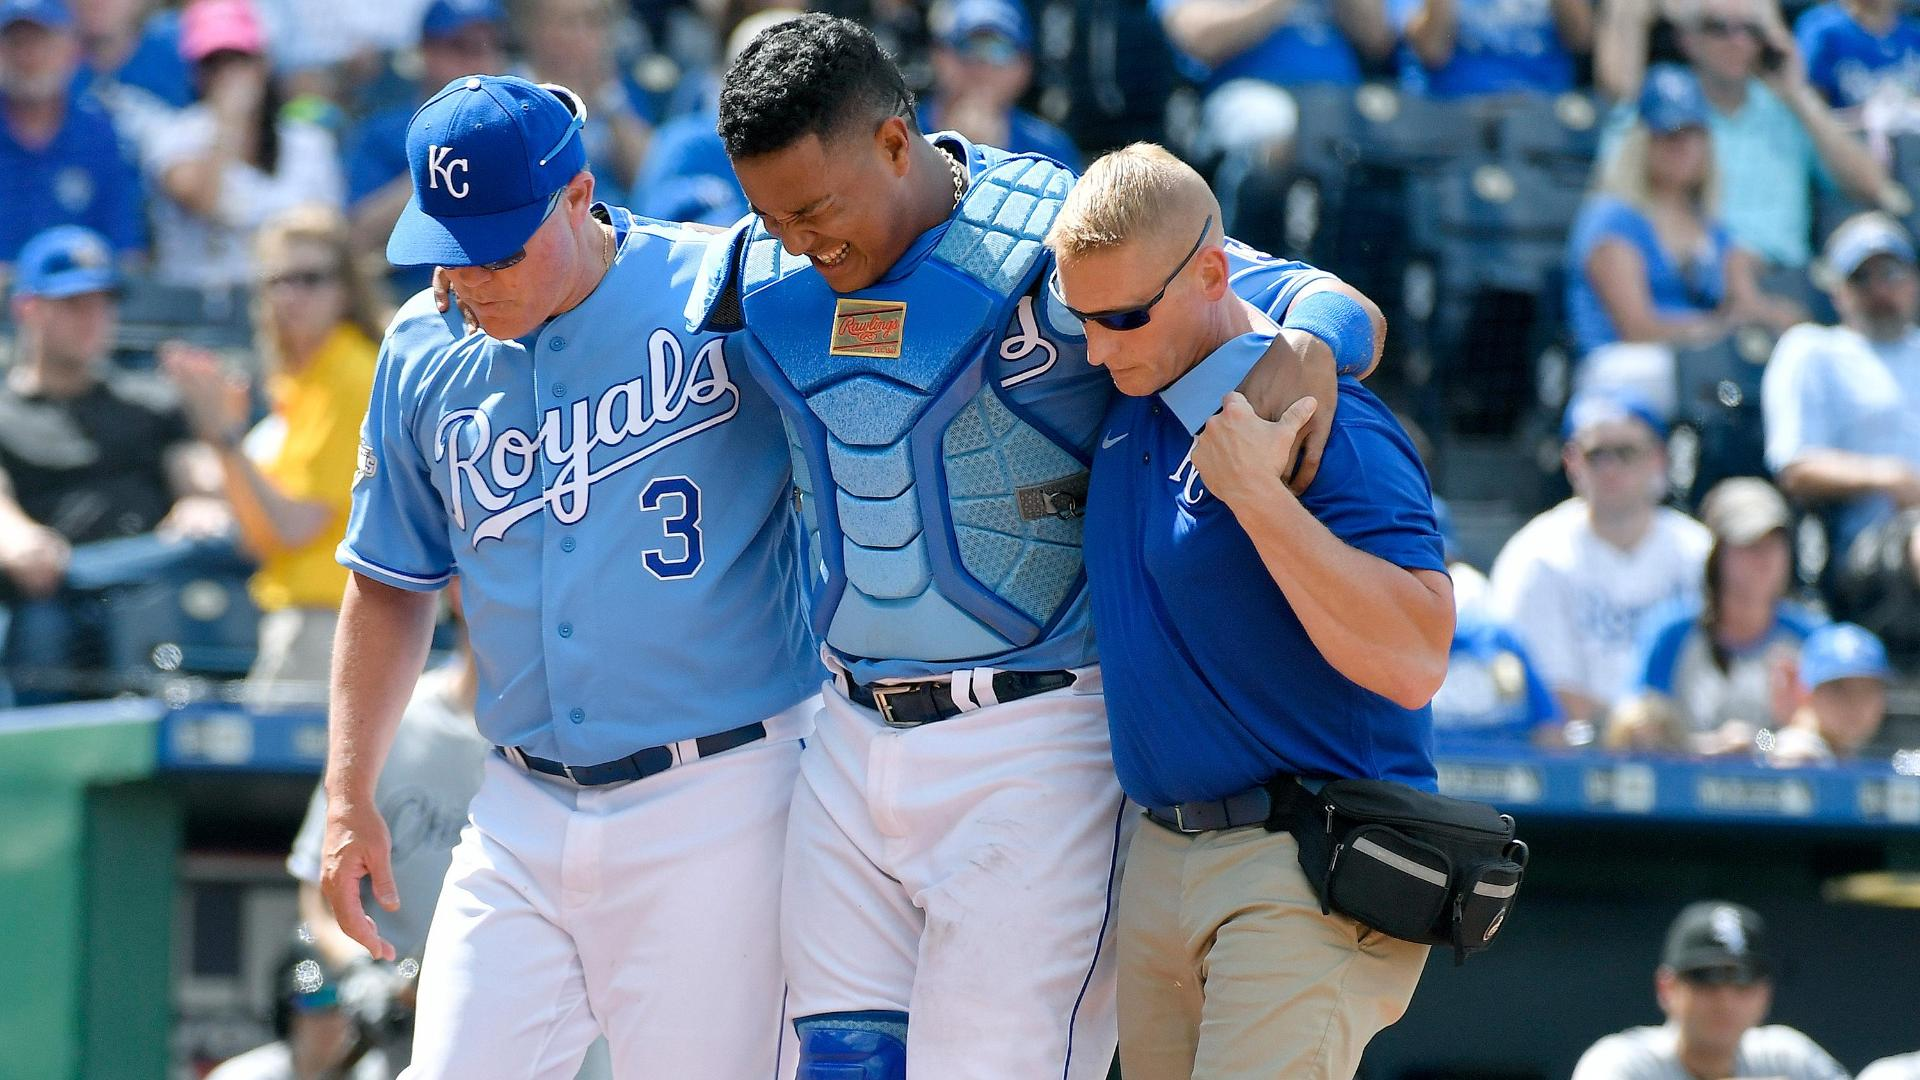 http://a.espncdn.com/media/motion/2016/0528/dm_160528_mlb_salvador_perez_injury1363/dm_160528_mlb_salvador_perez_injury1363.jpg